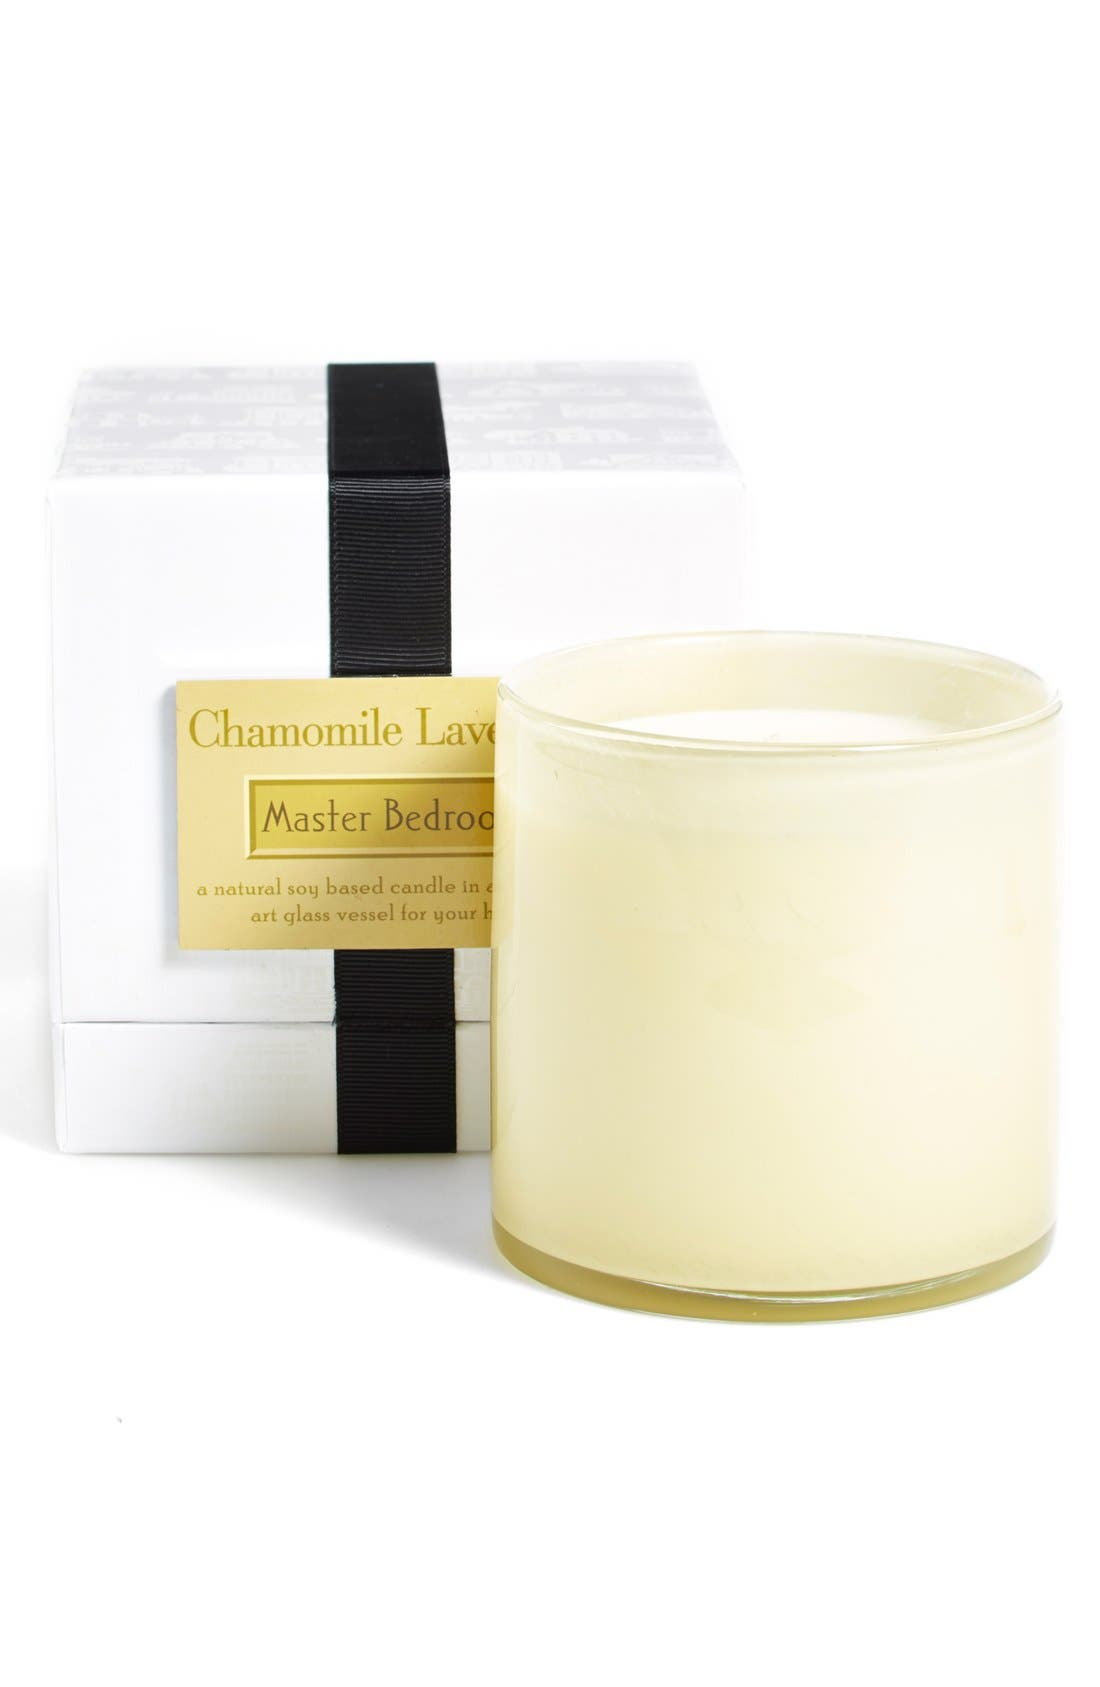 'Chamomile Lavender - Master Bedroom' Candle,                             Alternate thumbnail 2, color,                             NO COLOR